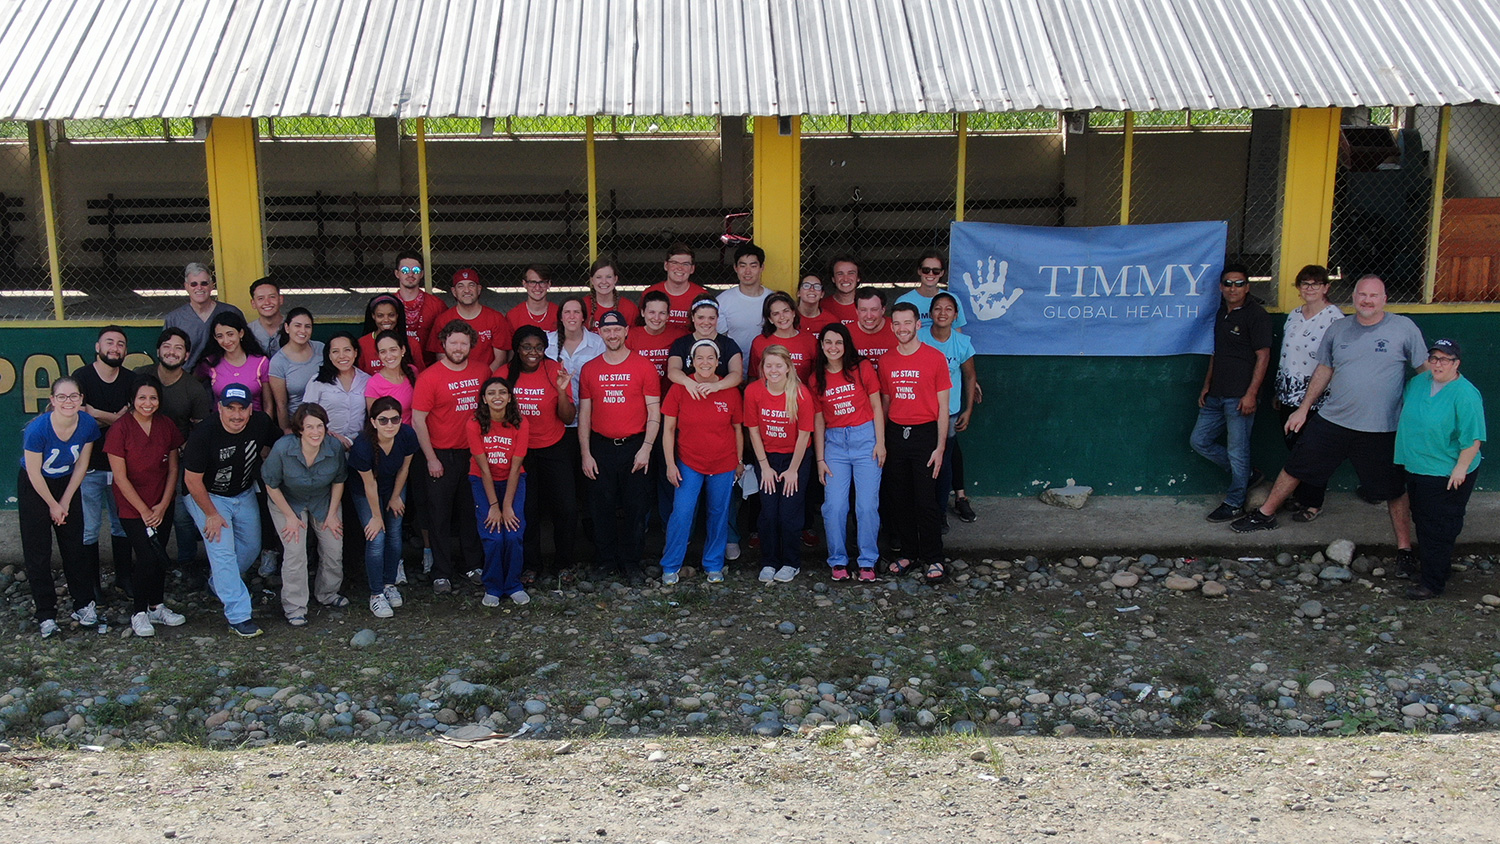 A team of students and leaders wearing NC State shirts stand outside a rural clinic in Ecuador with a TImmy Global Health banner